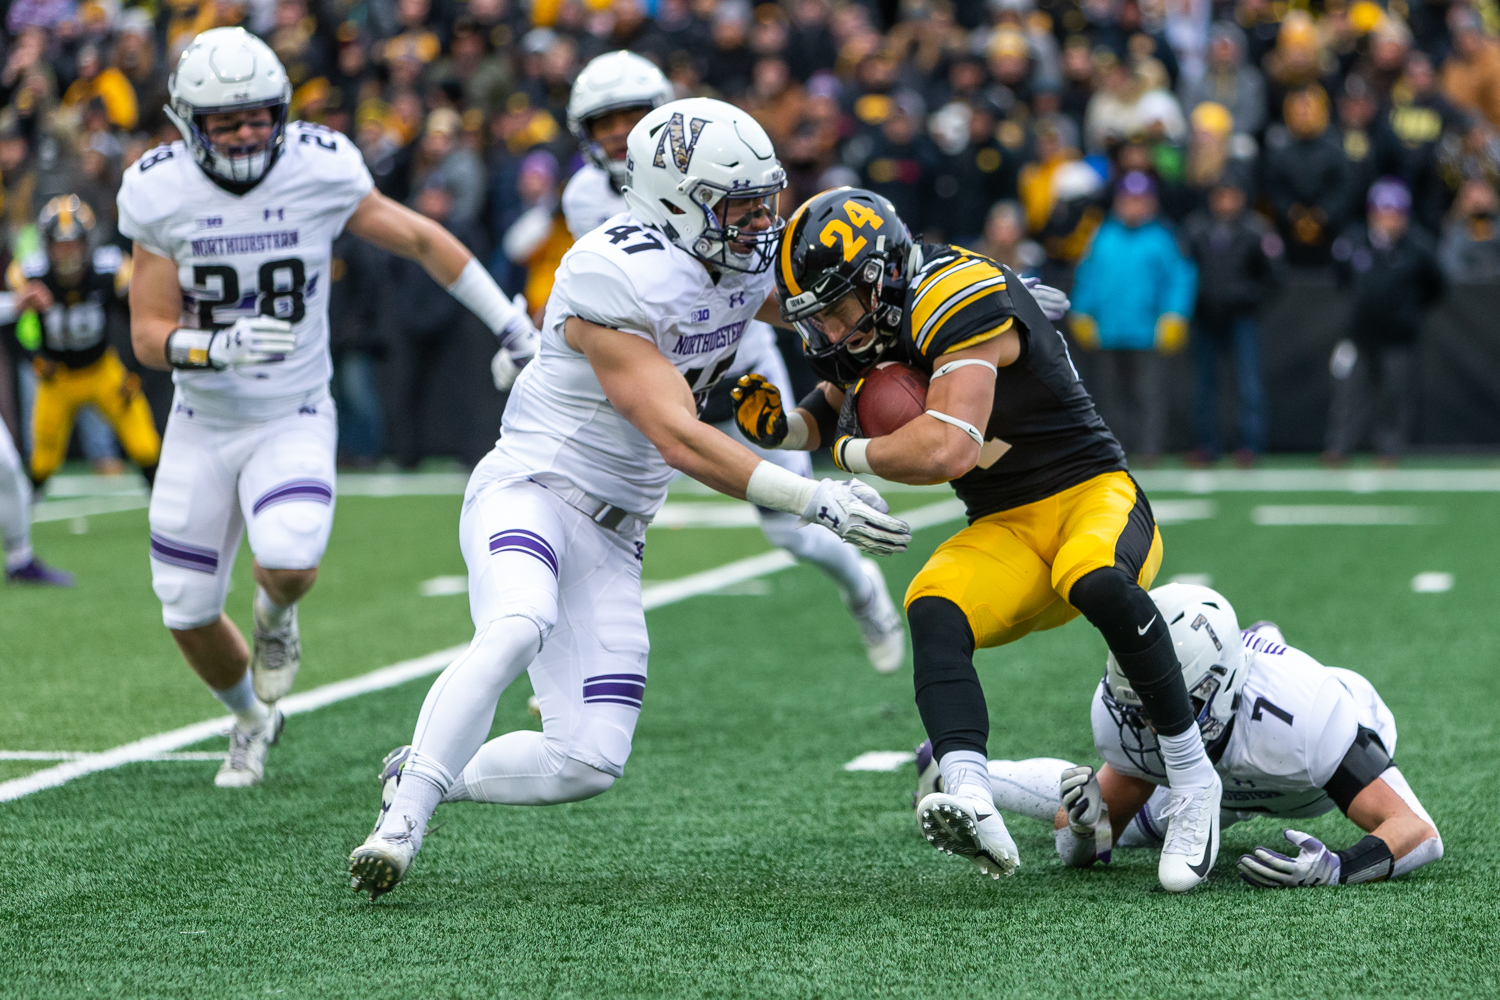 Iowa+wide+receiver+Kyle+Groeneweg+%2314+braces+for+contact+during+a+game+against+Northwestern+University+on+Saturday%2C+Nov.+10%2C+2018+at+Kinnick+Stadium+in+Iowa+City.+The+Wildcats+defeated+the+Hawkeyes+14-10.+%28David+Harmantas%2FThe+Daily+Iowan%29